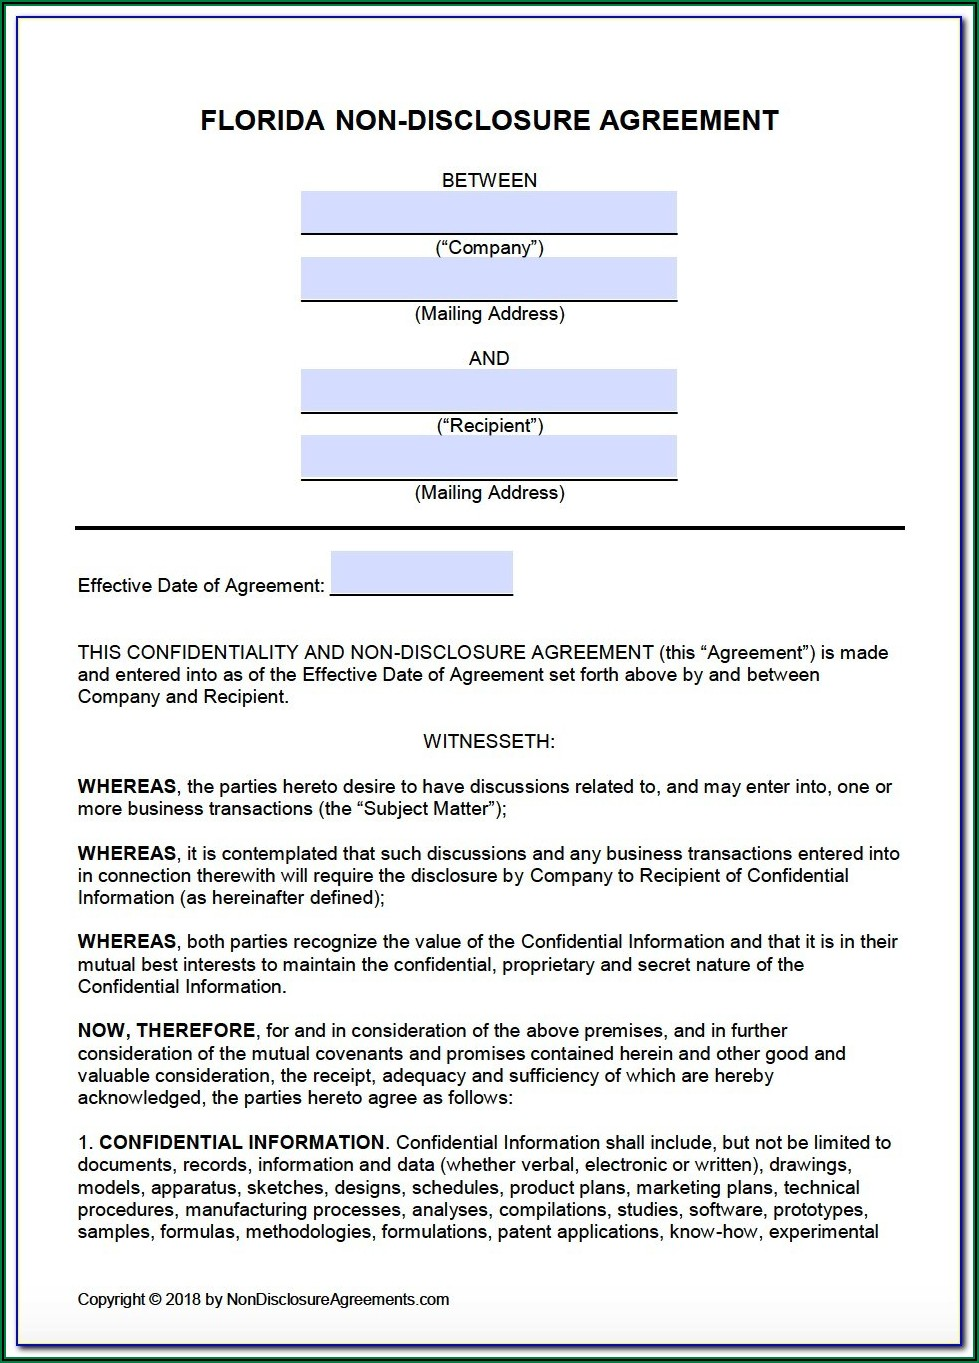 Dod Contractor Non Disclosure Agreement Form